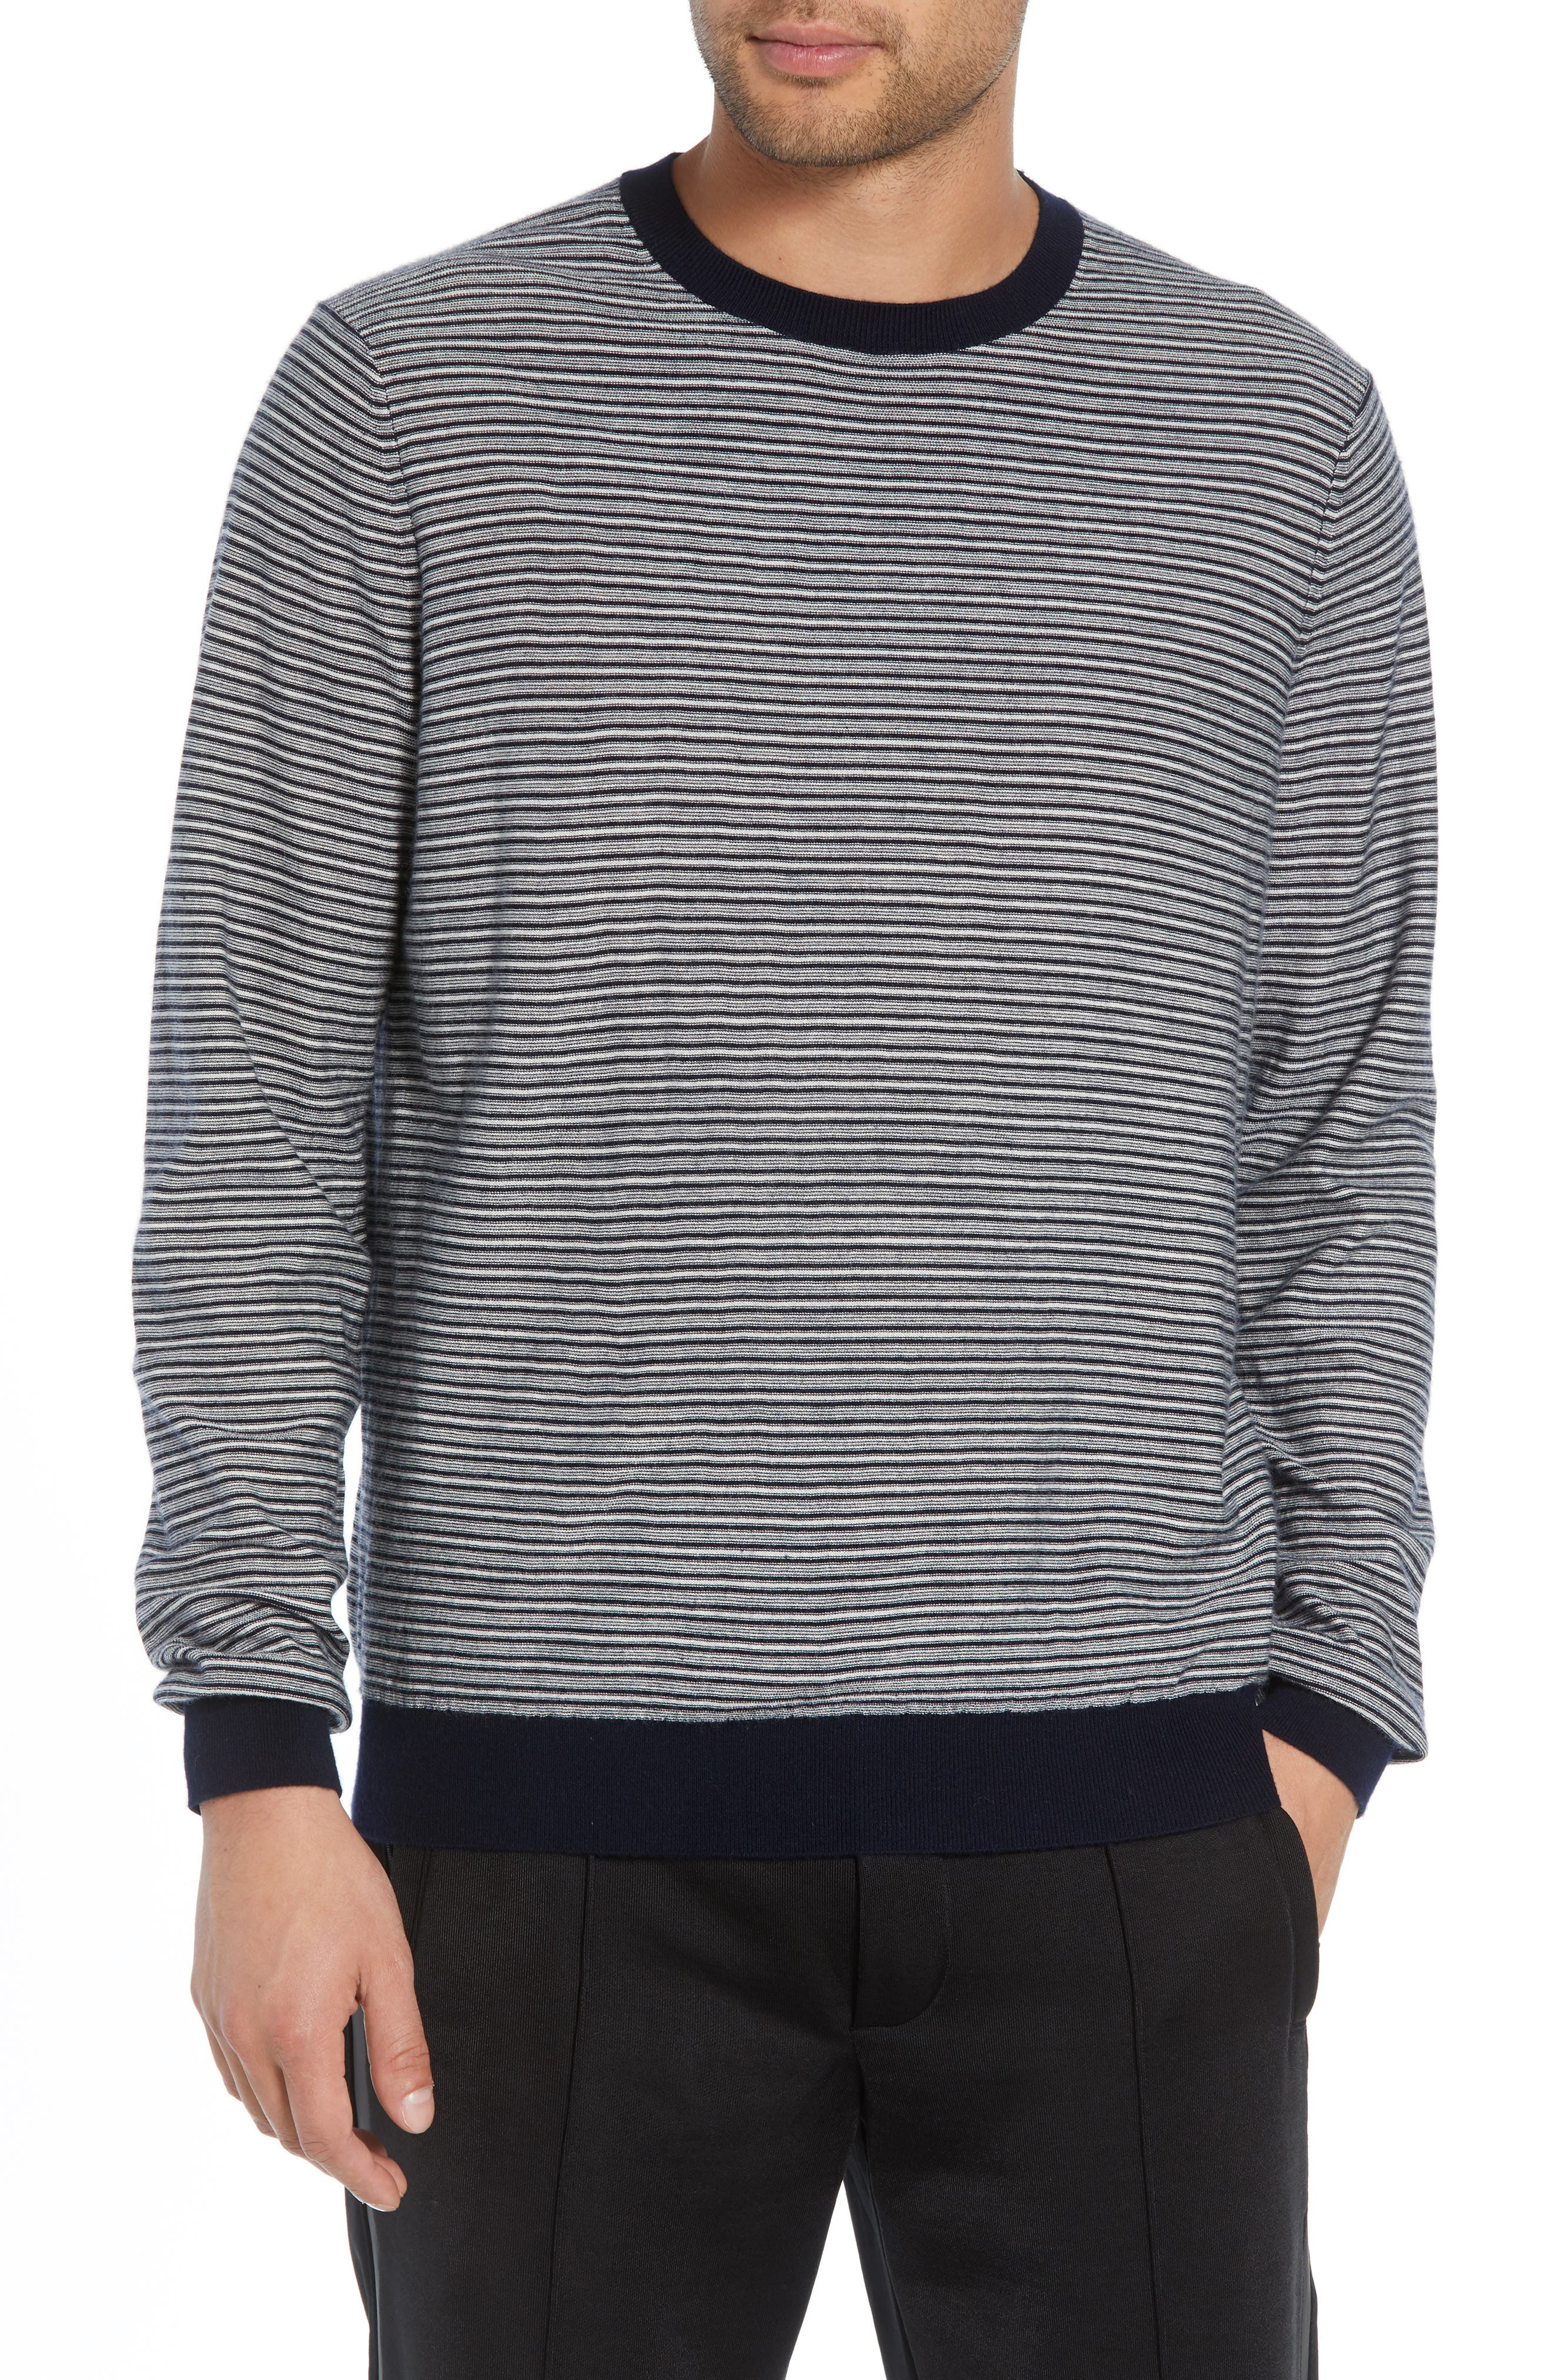 Striped Wool & Cashmere Sweater,                             Main thumbnail 1, color,                             400